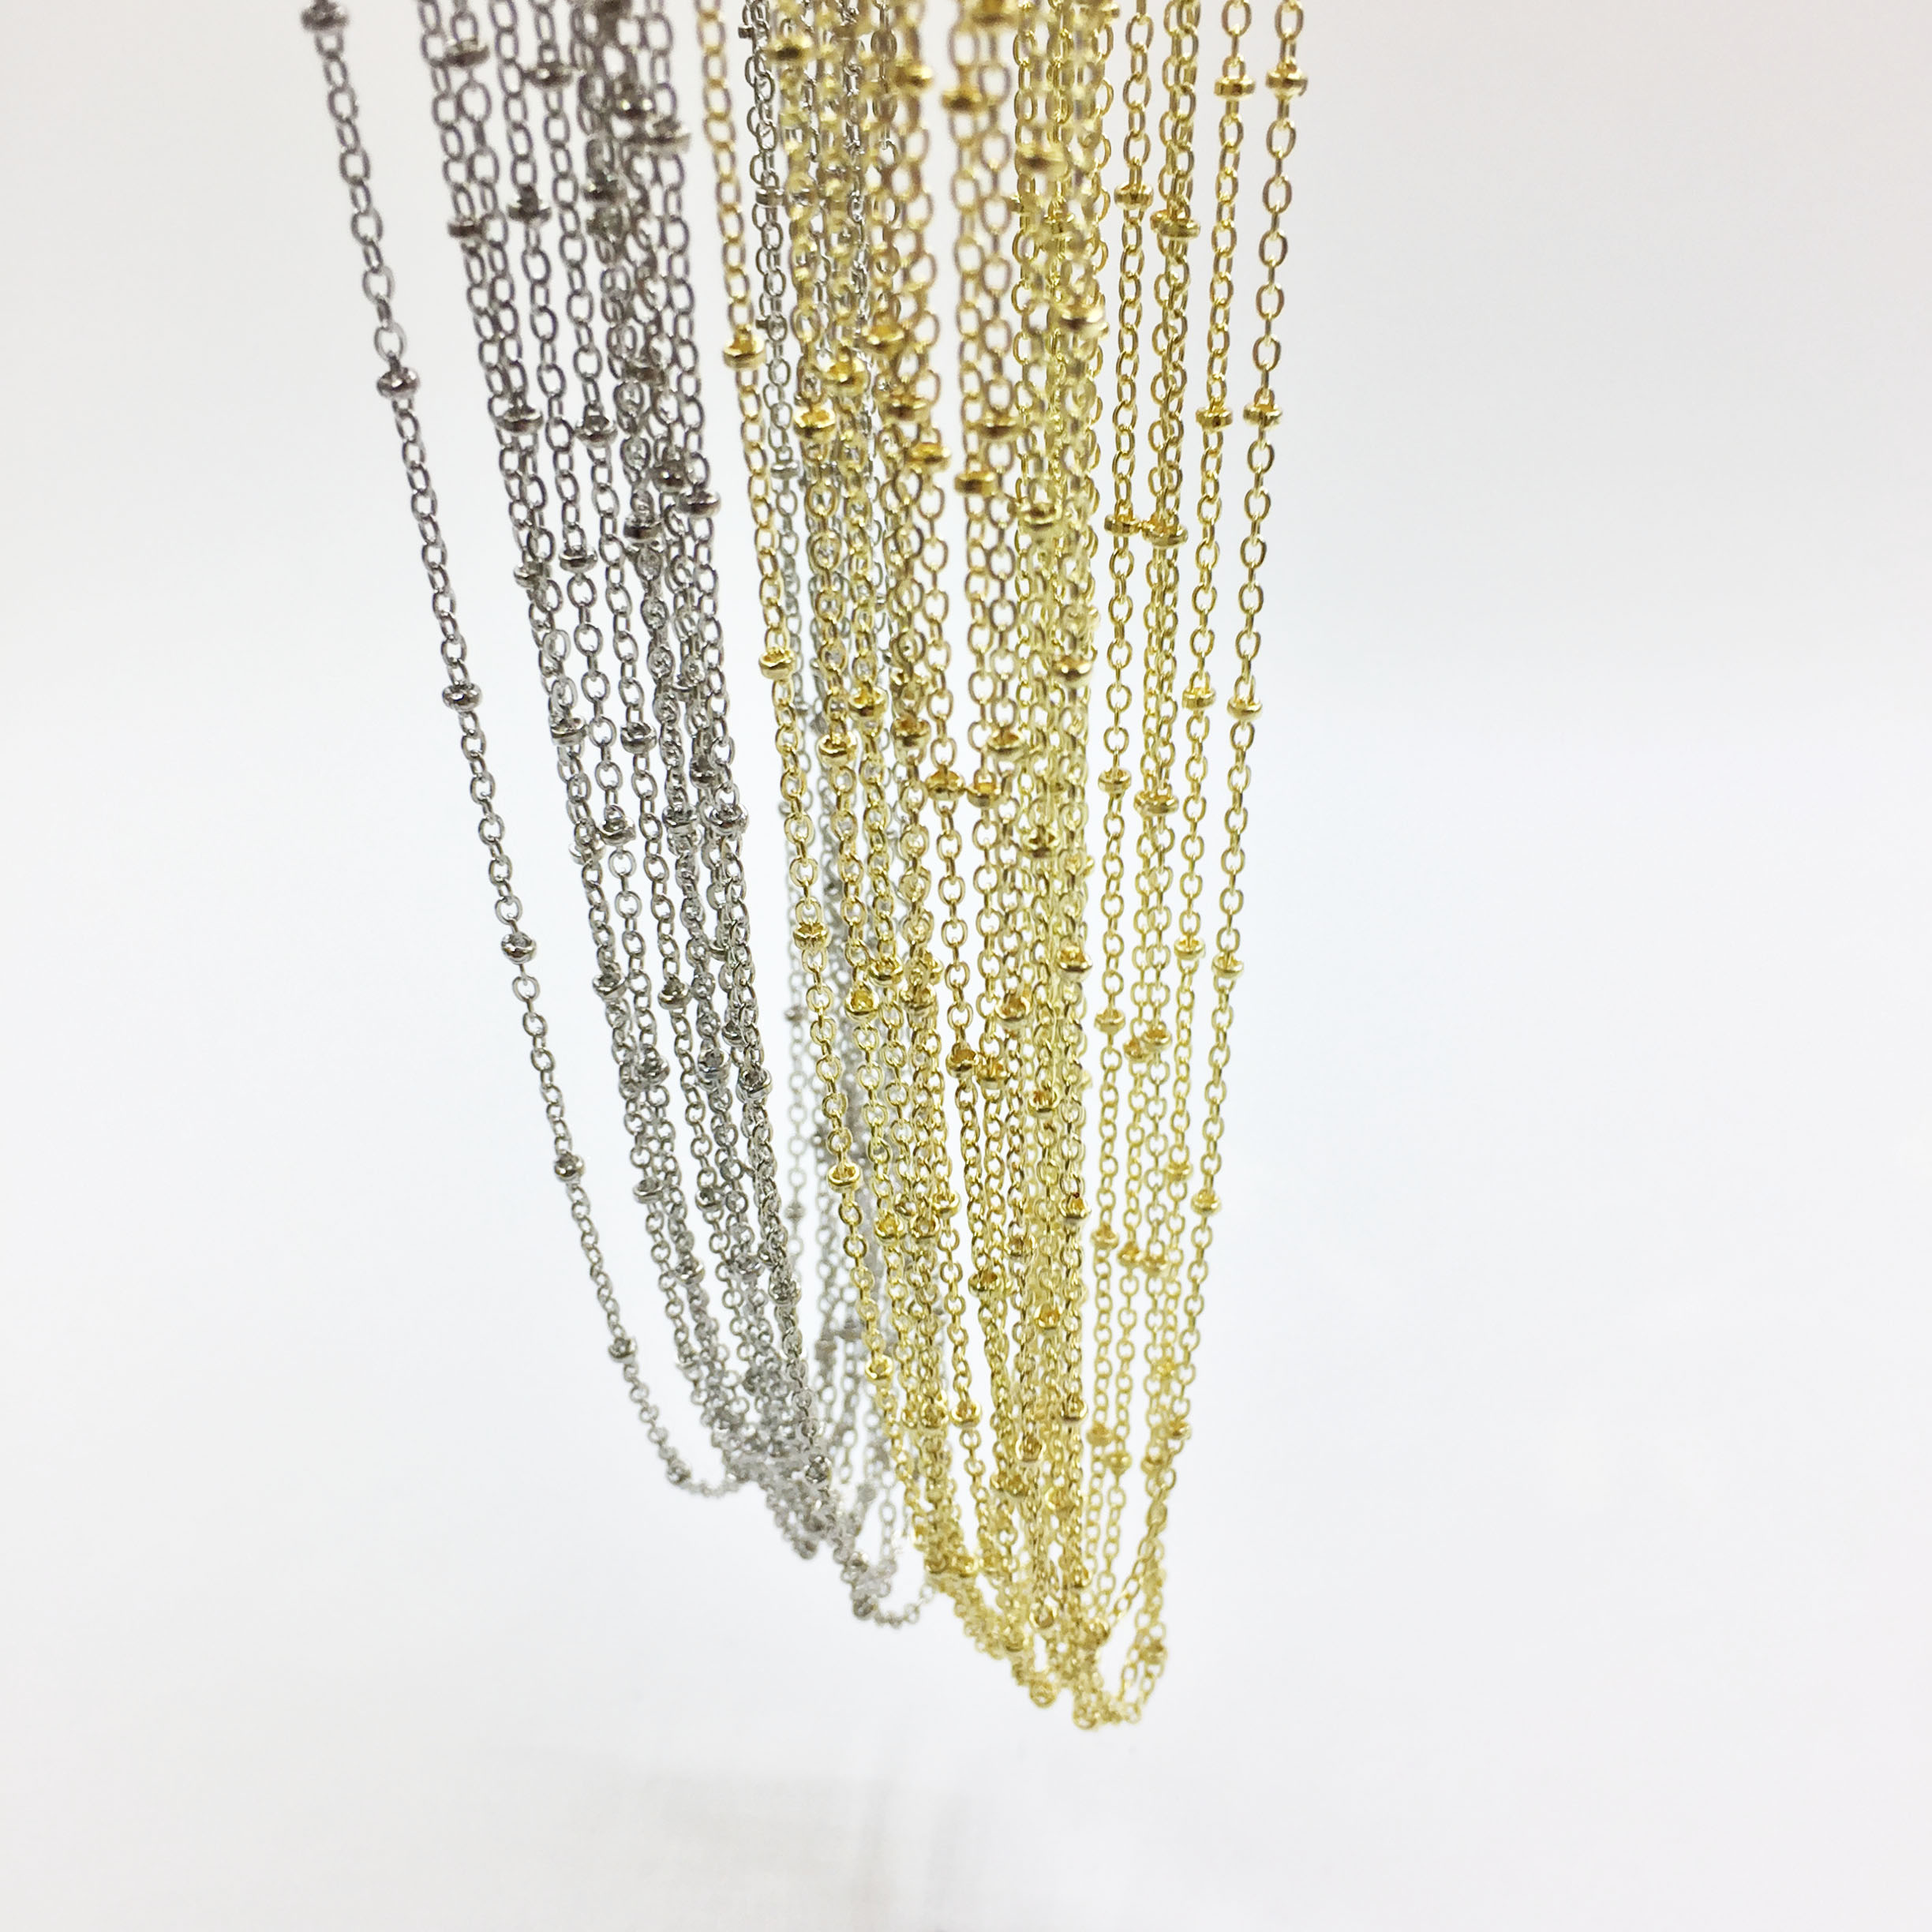 Eruifa 10pcs 45cm Tiny Dot Chain With 6cm Ext Chain Jewelry Link DIY Finding  Necklace,2 Colors Nickle Free And Lead Free